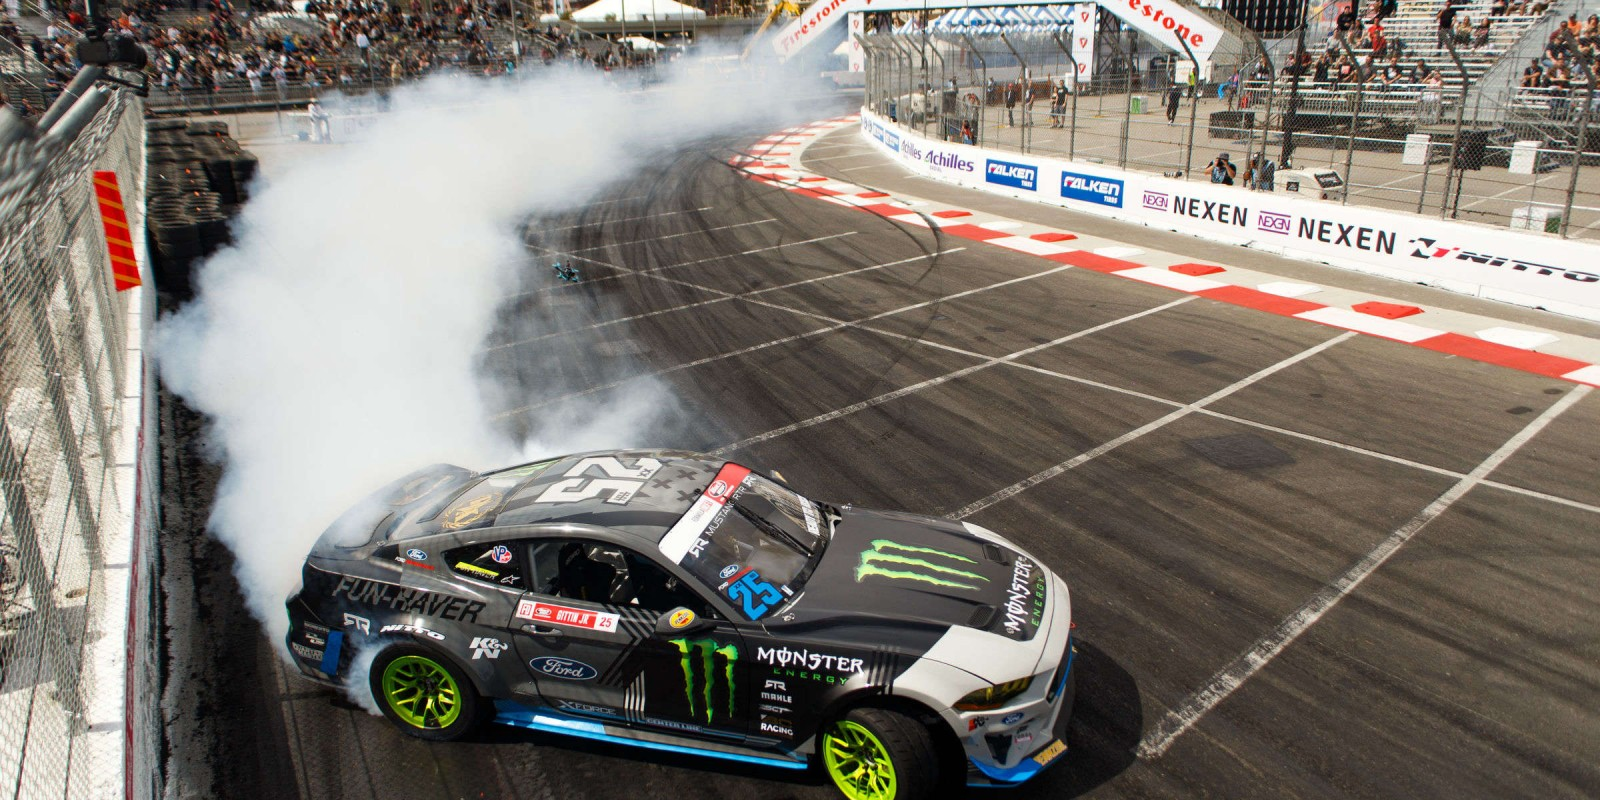 Actions shots from the Formula Drift in Long Beach